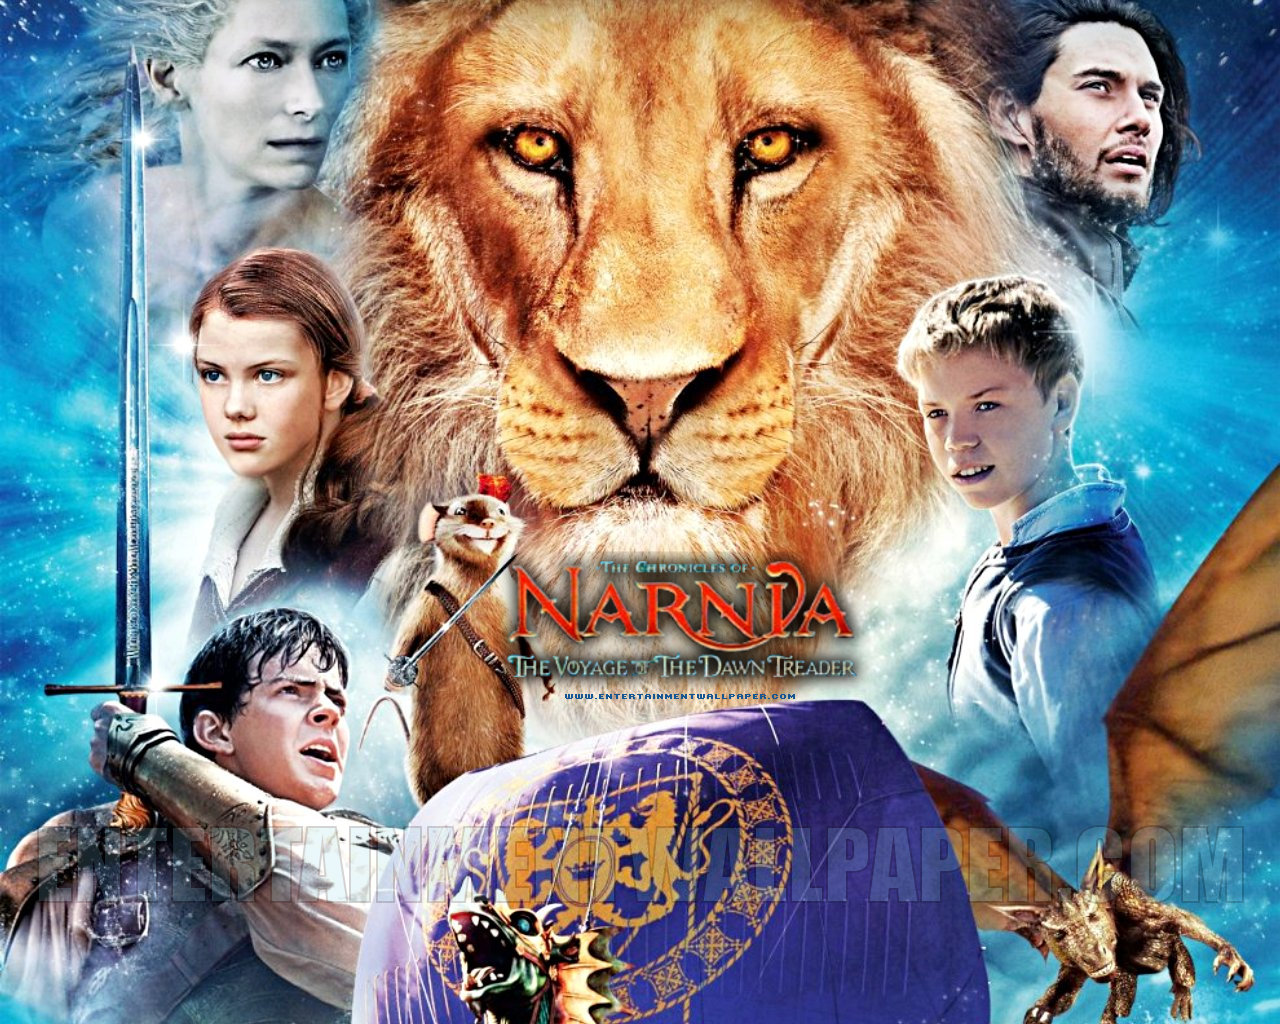 1280x1024 - The Chronicles of Narnia: The Voyage of the Dawn Treader Wallpapers 3